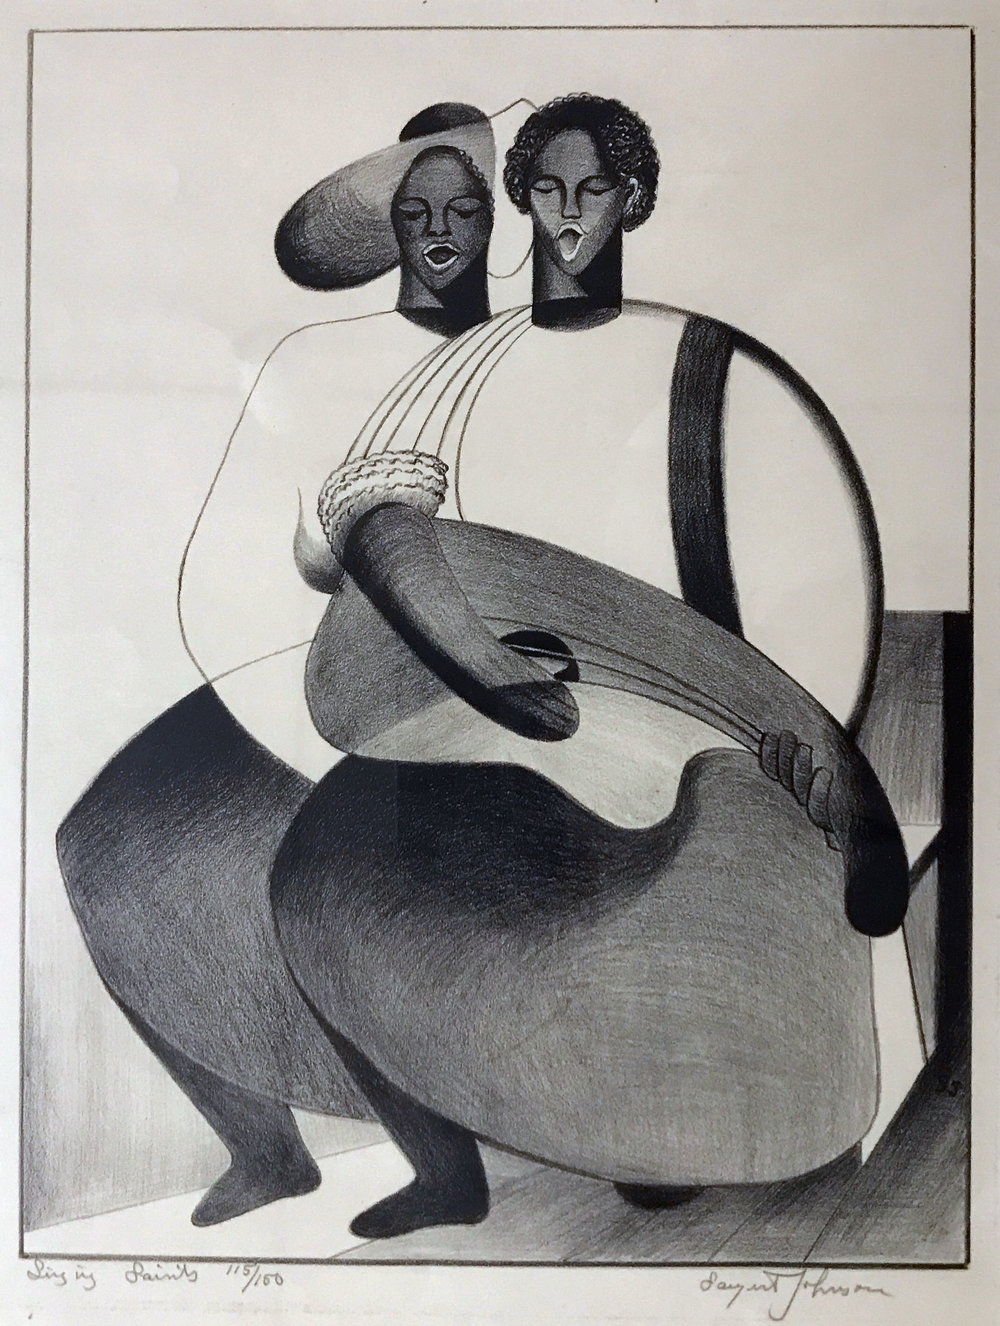 Sargent Johnson. (1888-1967)   Singing Saints . Lithograph, 20 1/8 x 16 inches, 1940